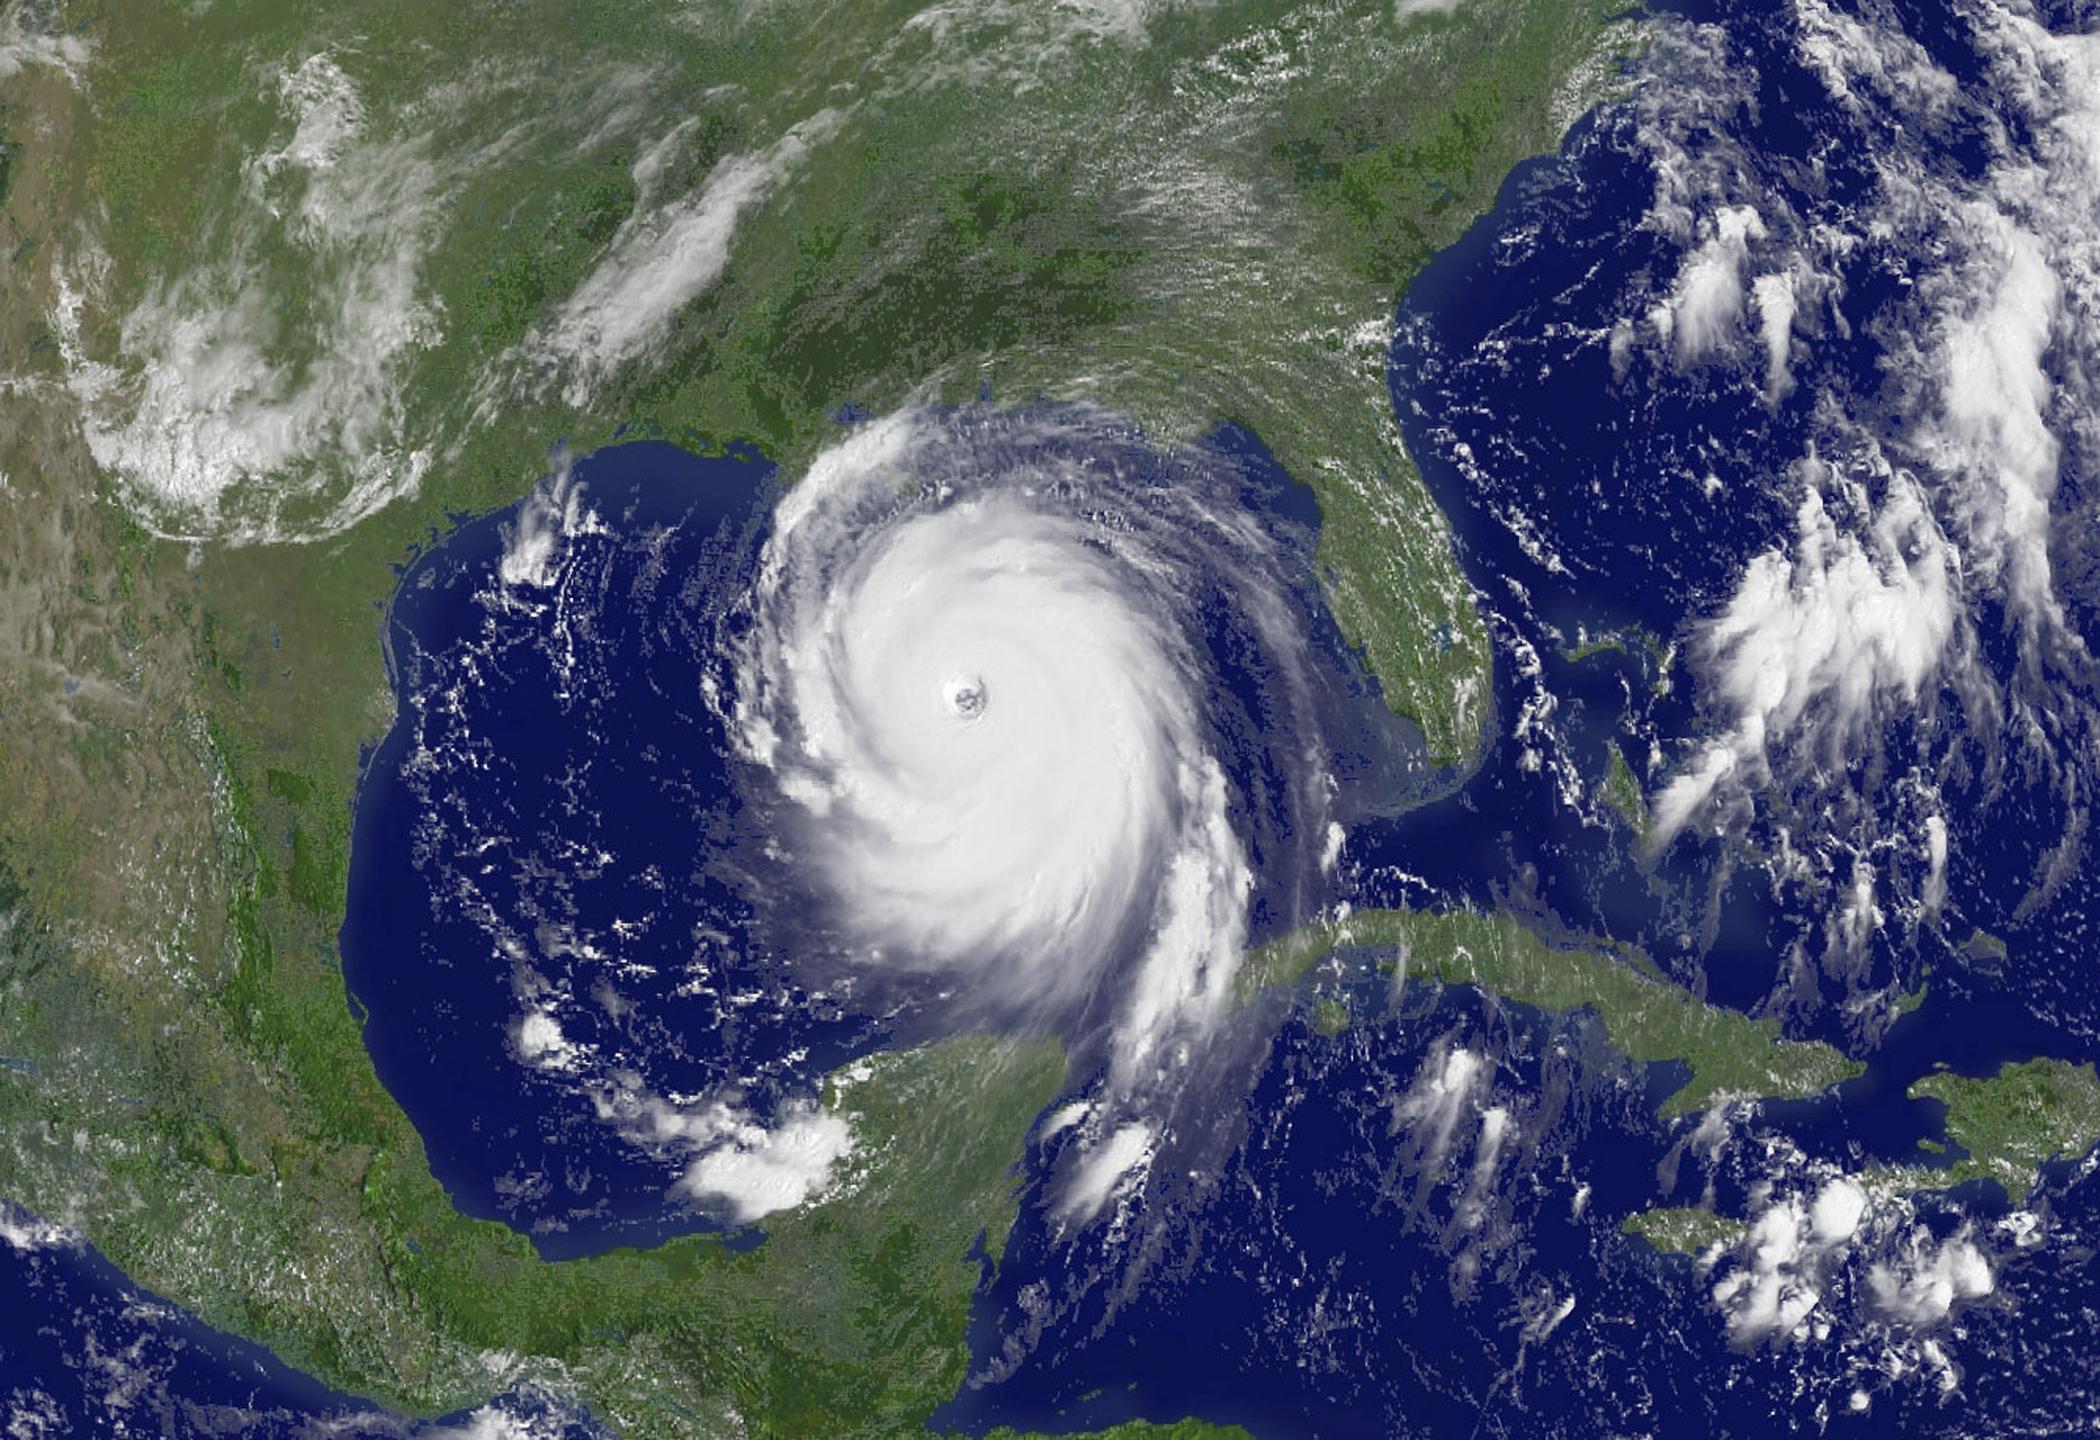 National Oceanic and Atmospheric Administration satellite image of Hurricane Katrina in the Gulf of Mexico on August 28, 2005.